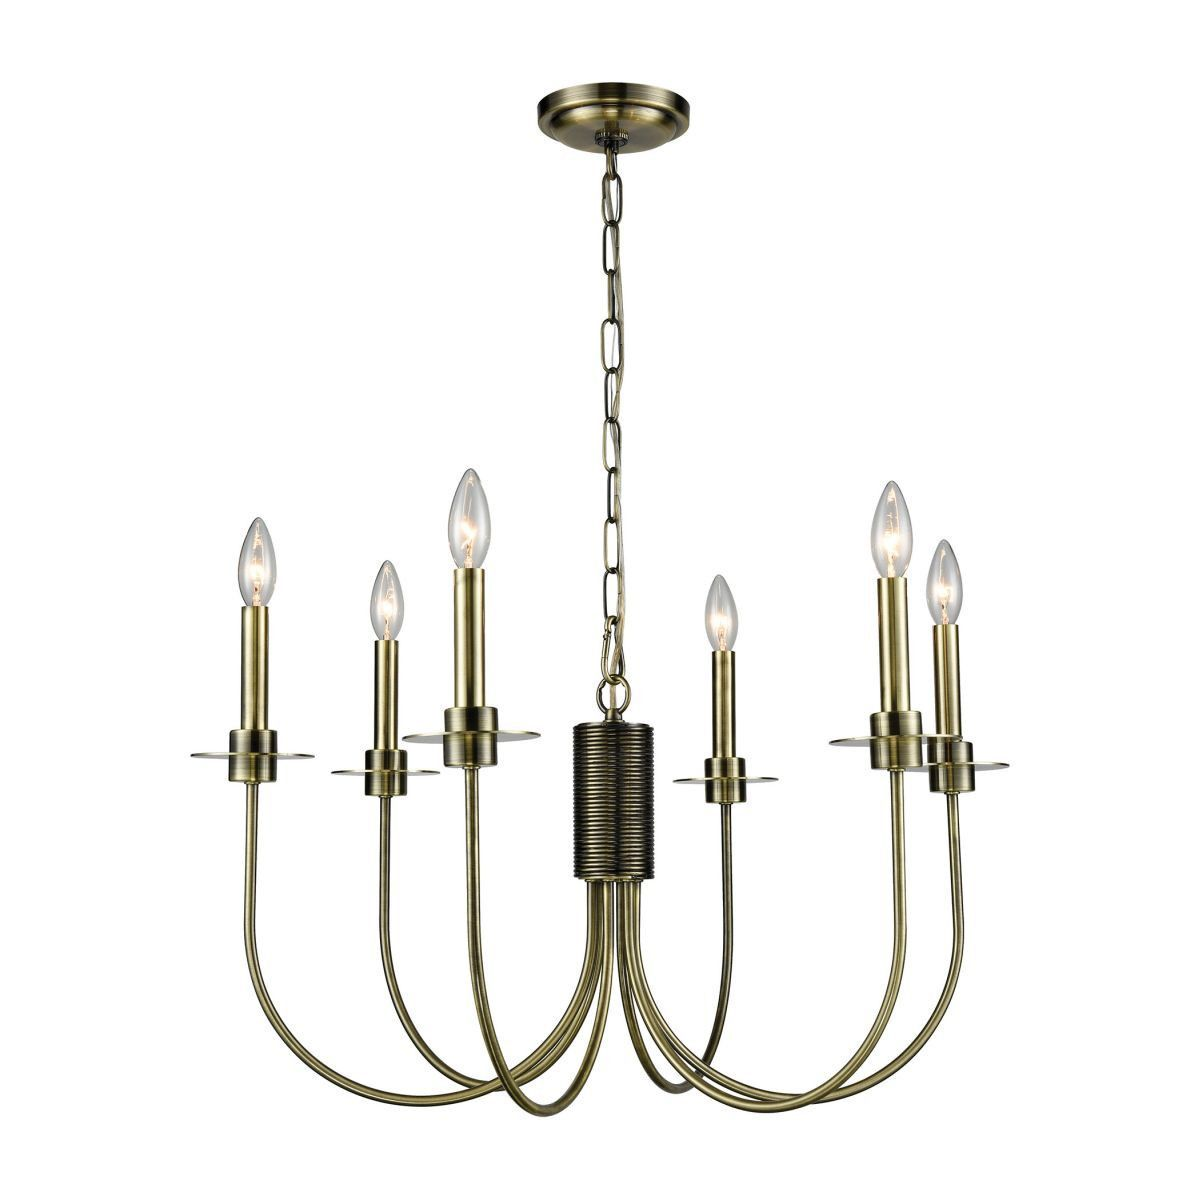 Ursela chandelier design by lazy susan products